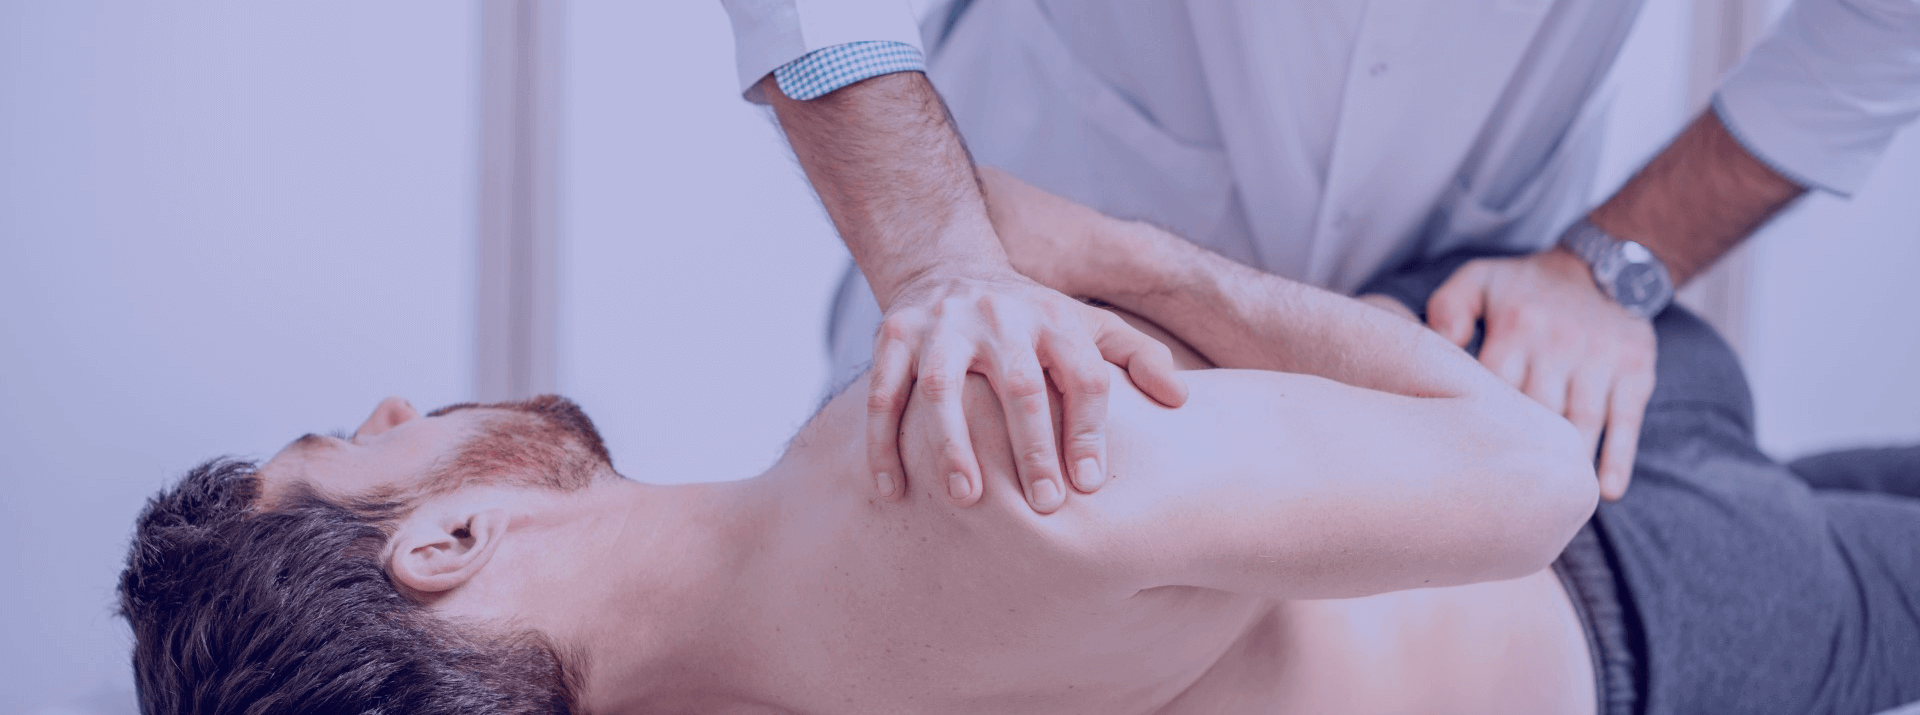 Phisical Therapy perfomed on a shoulder